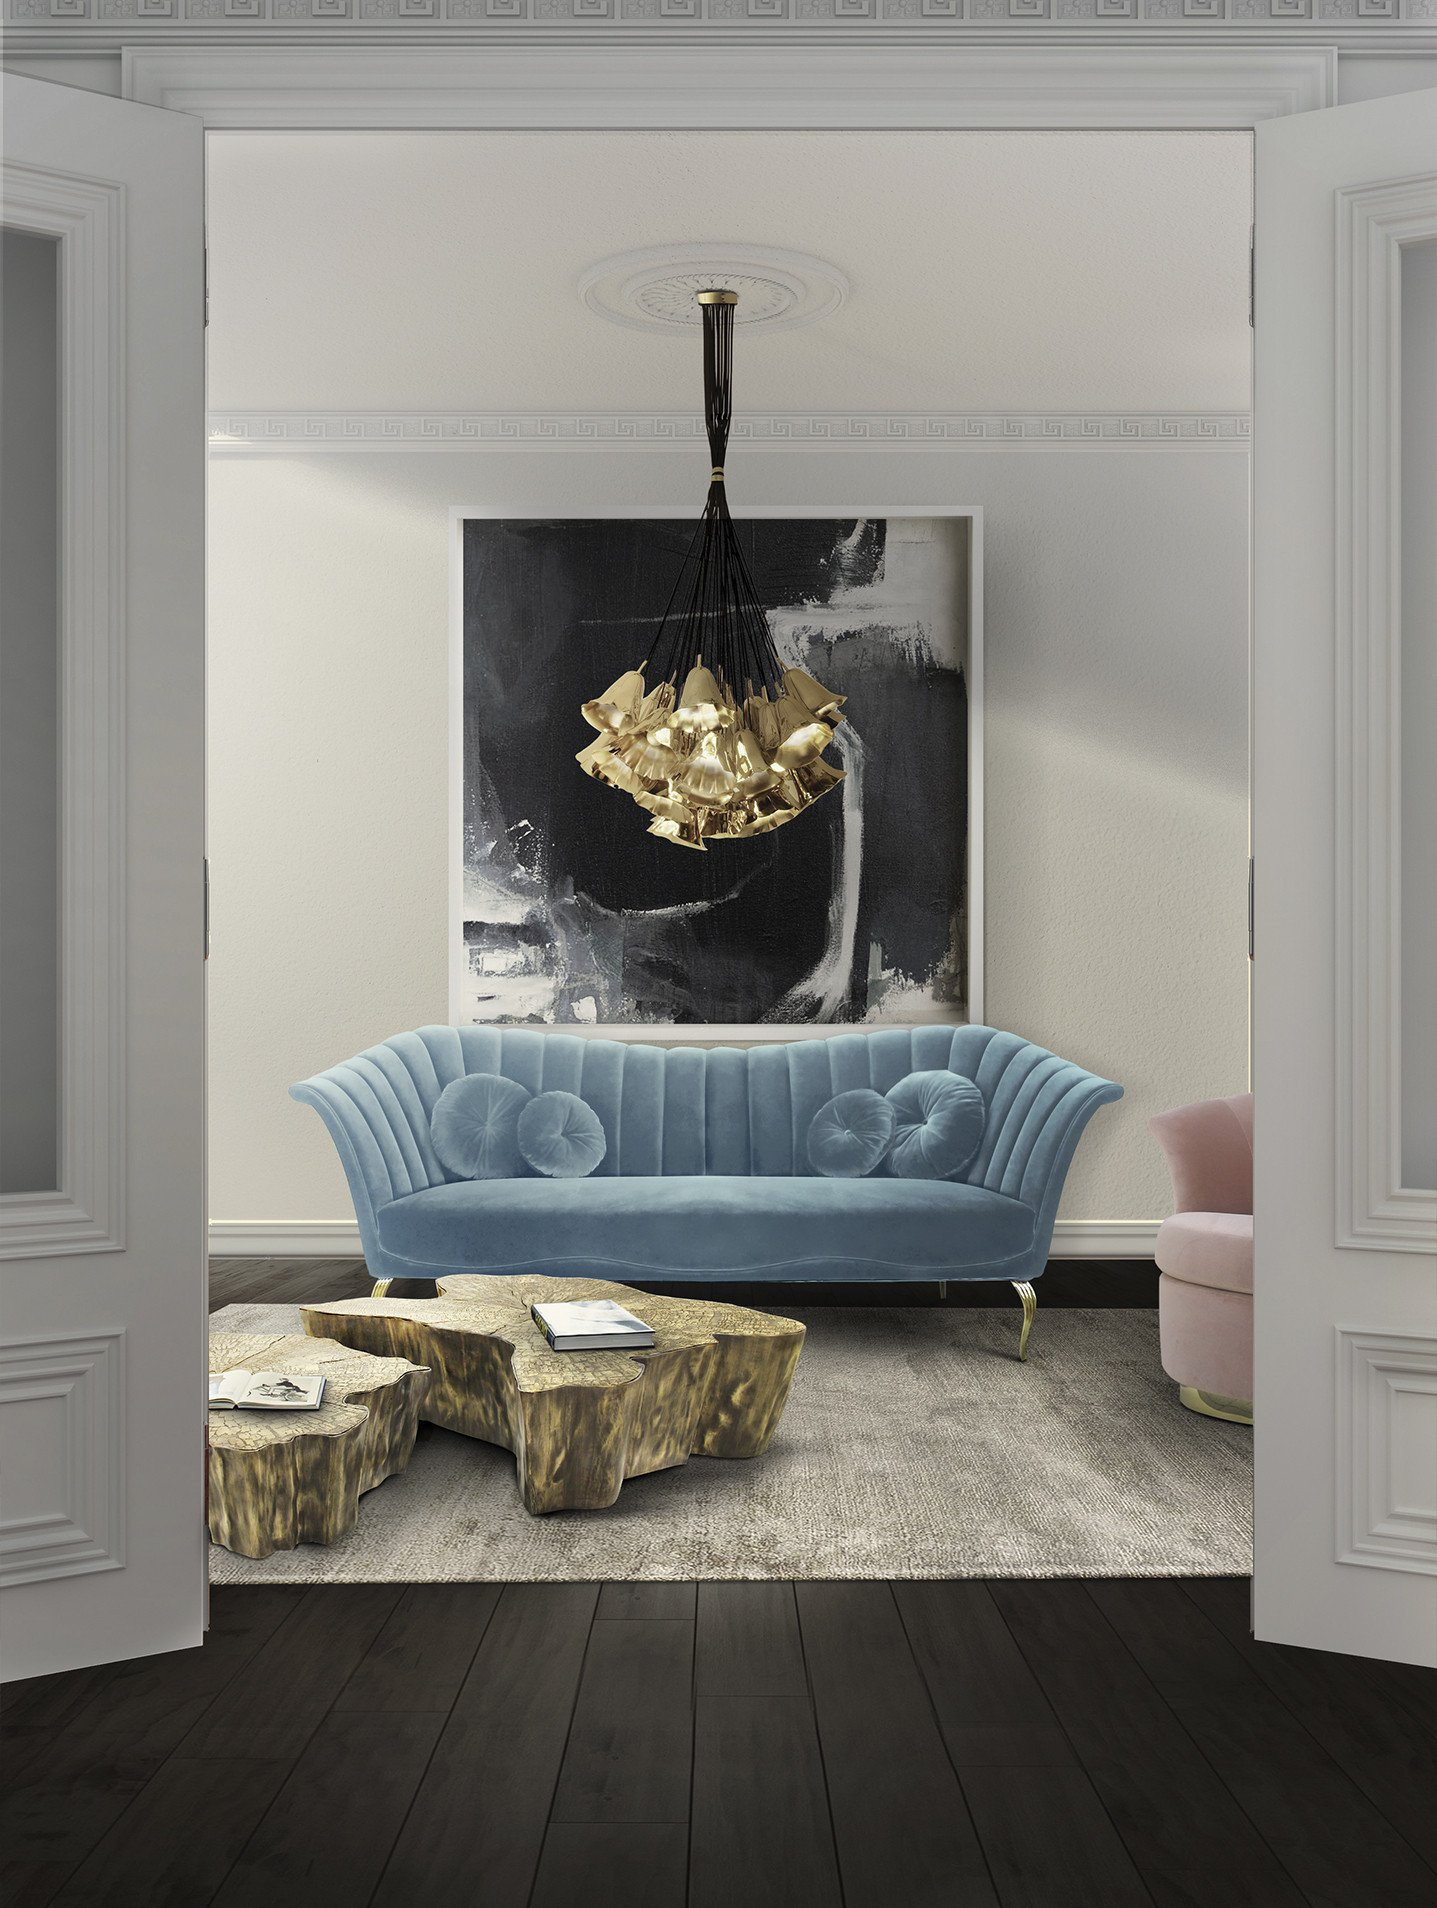 Shades Of Blue for Bedroom Inspirational 16 Spectacular Gray Hardwood Floors Bedroom